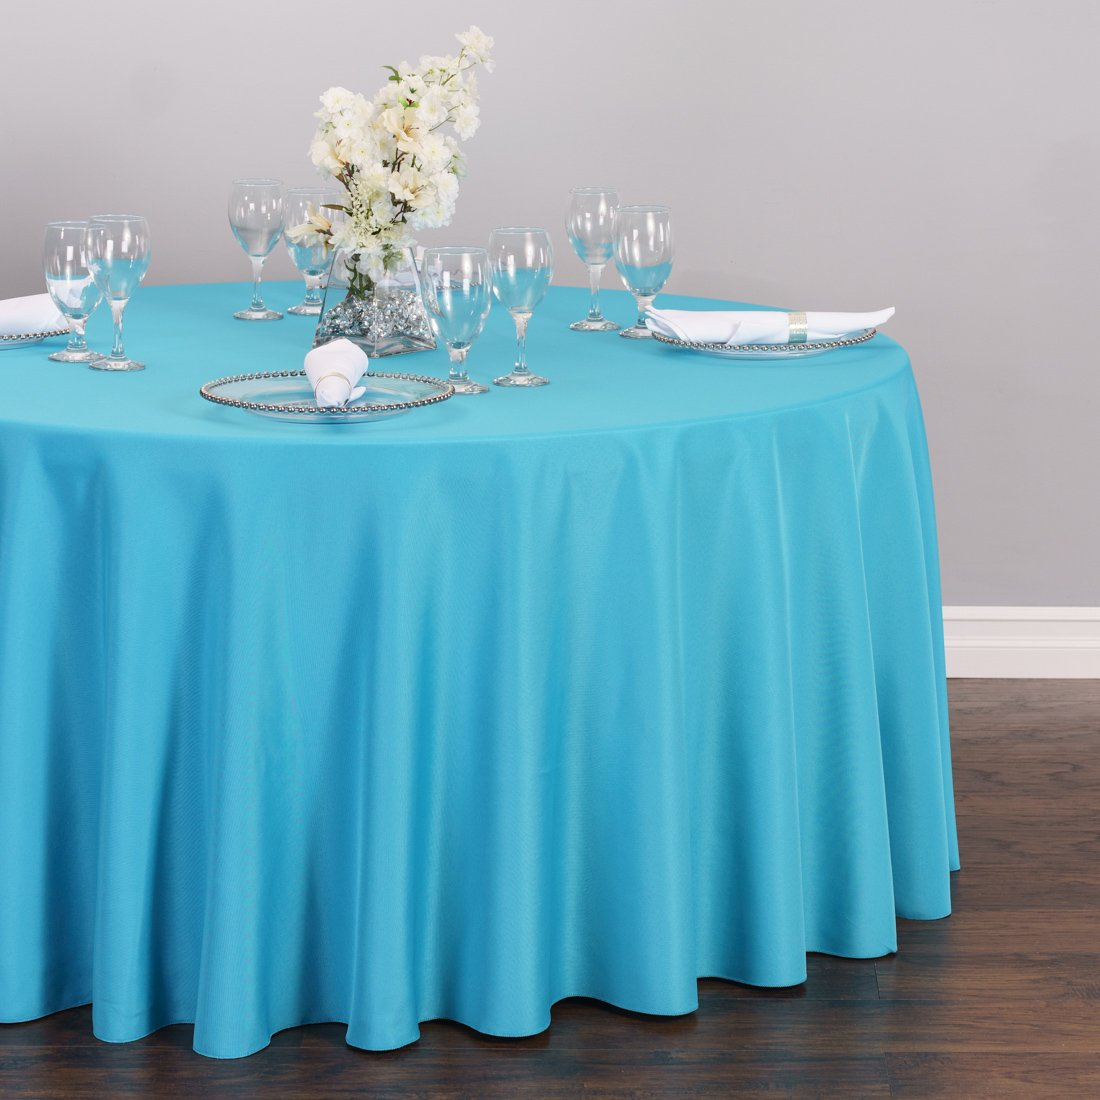 Amazoncom LinenTablecloth 120 Inch Round Polyester Tablecloth Turquoise